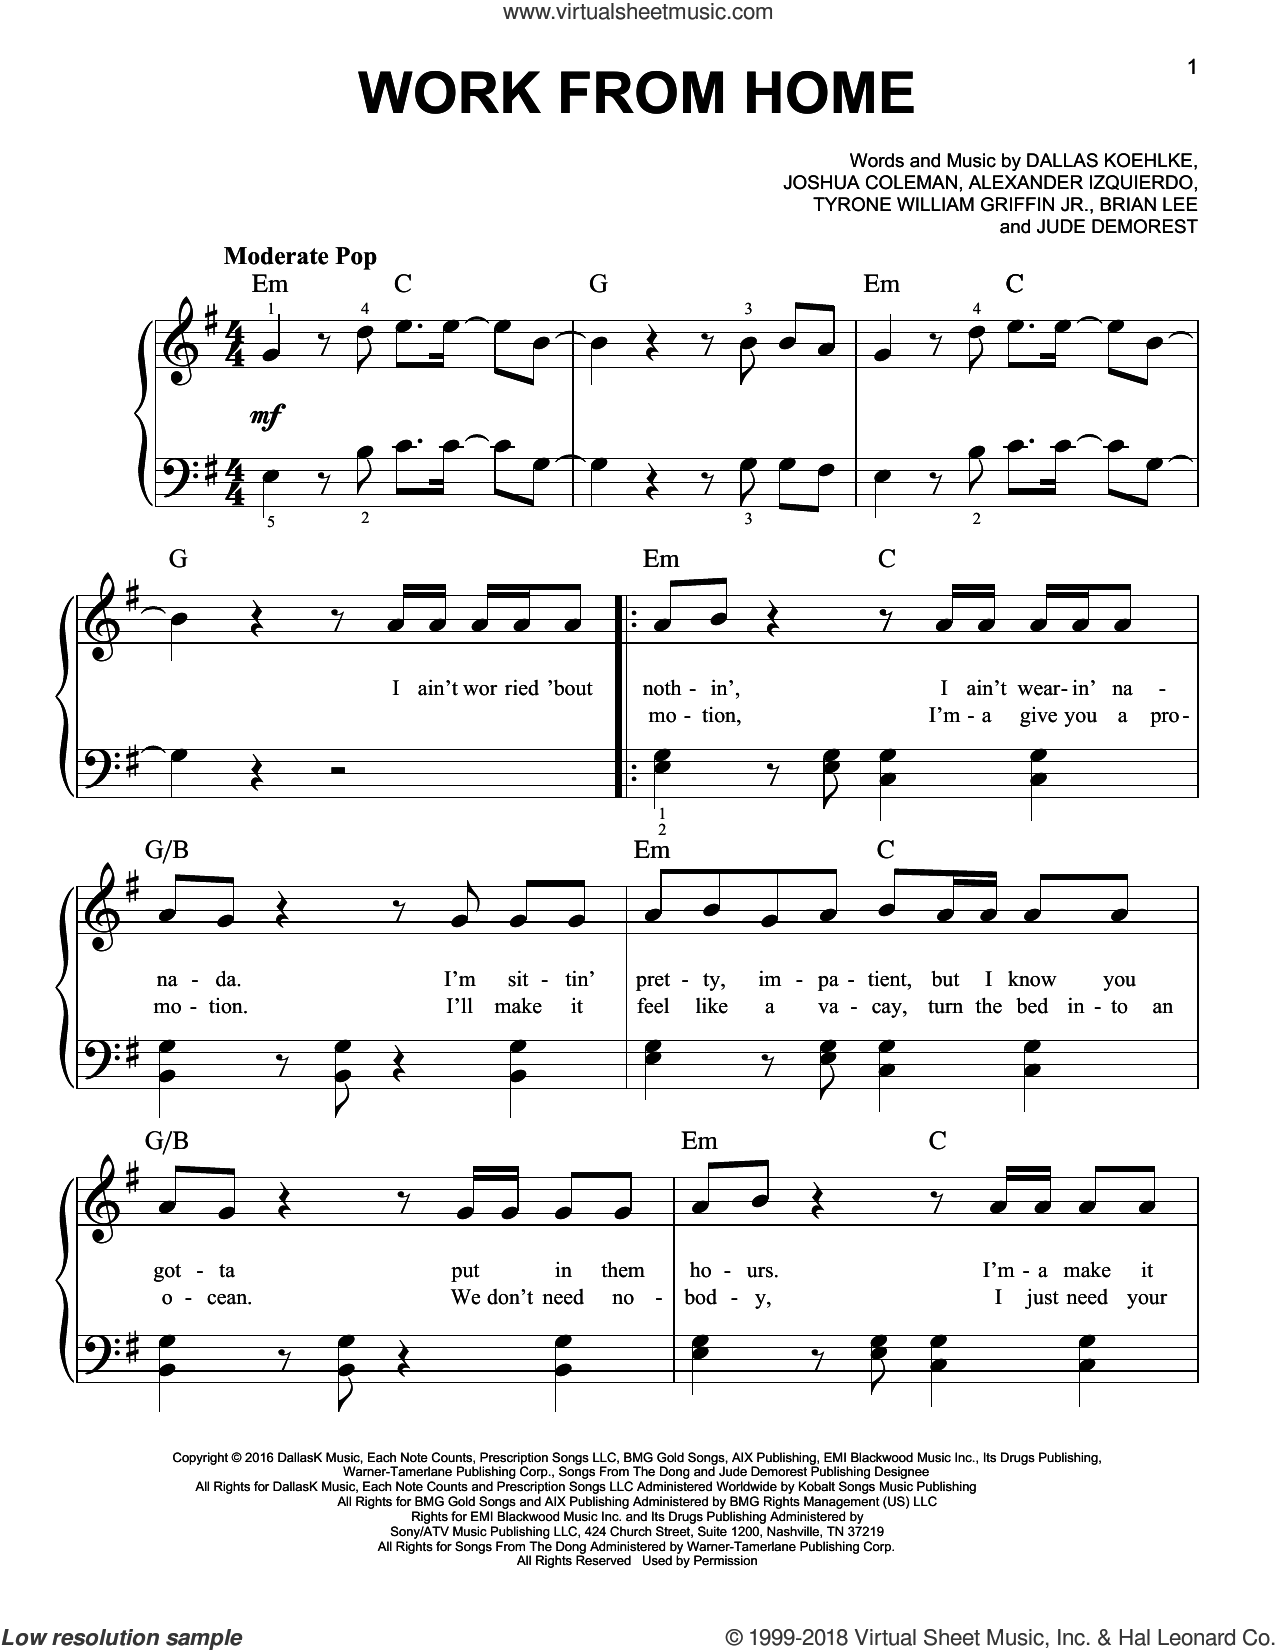 Work From Home sheet music for piano solo by Tyrone William Griffin Jr., Brian Lee and Joshua Coleman. Score Image Preview.